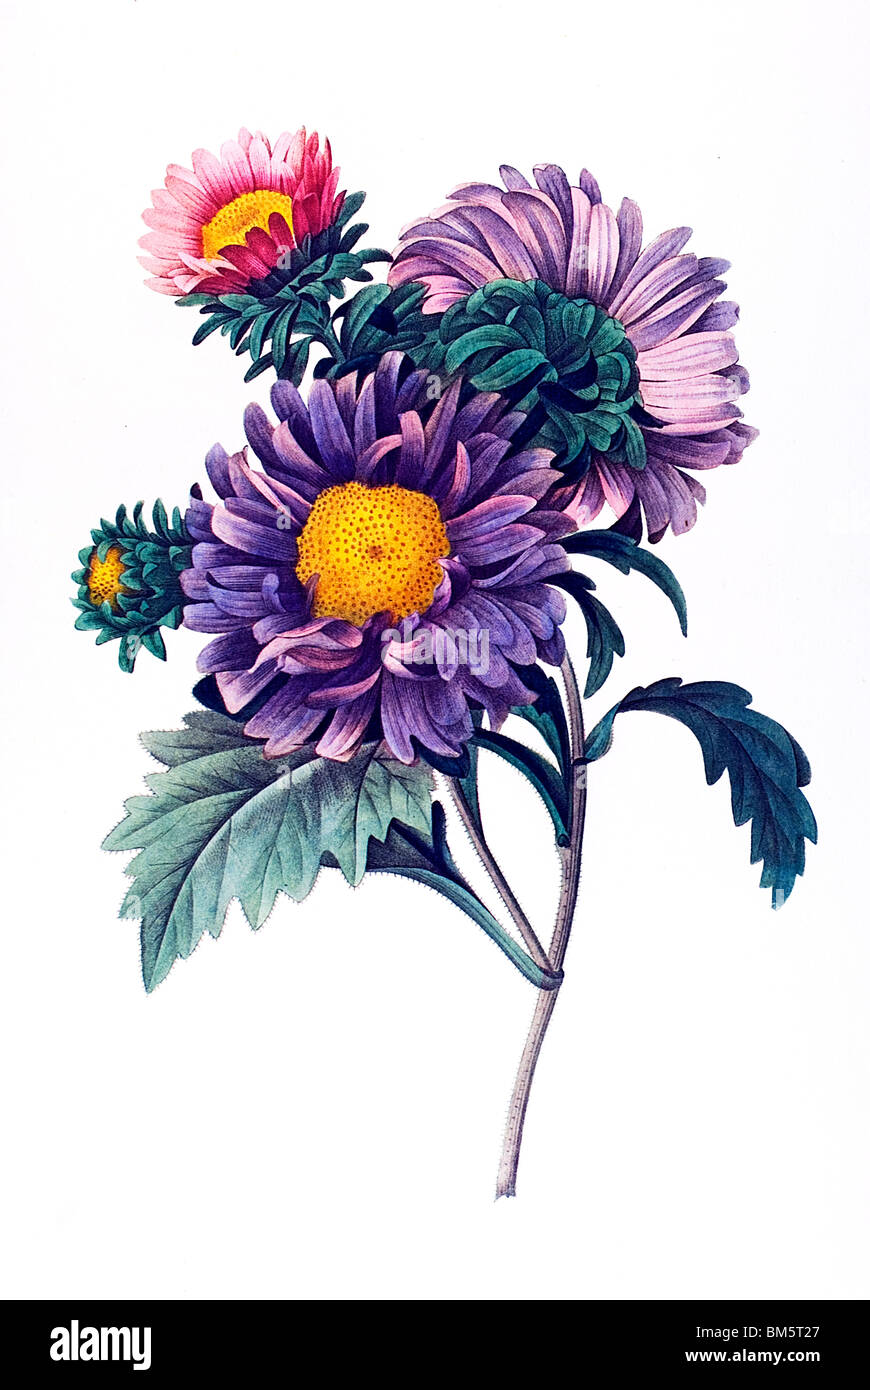 China Aster violett - Stock Image